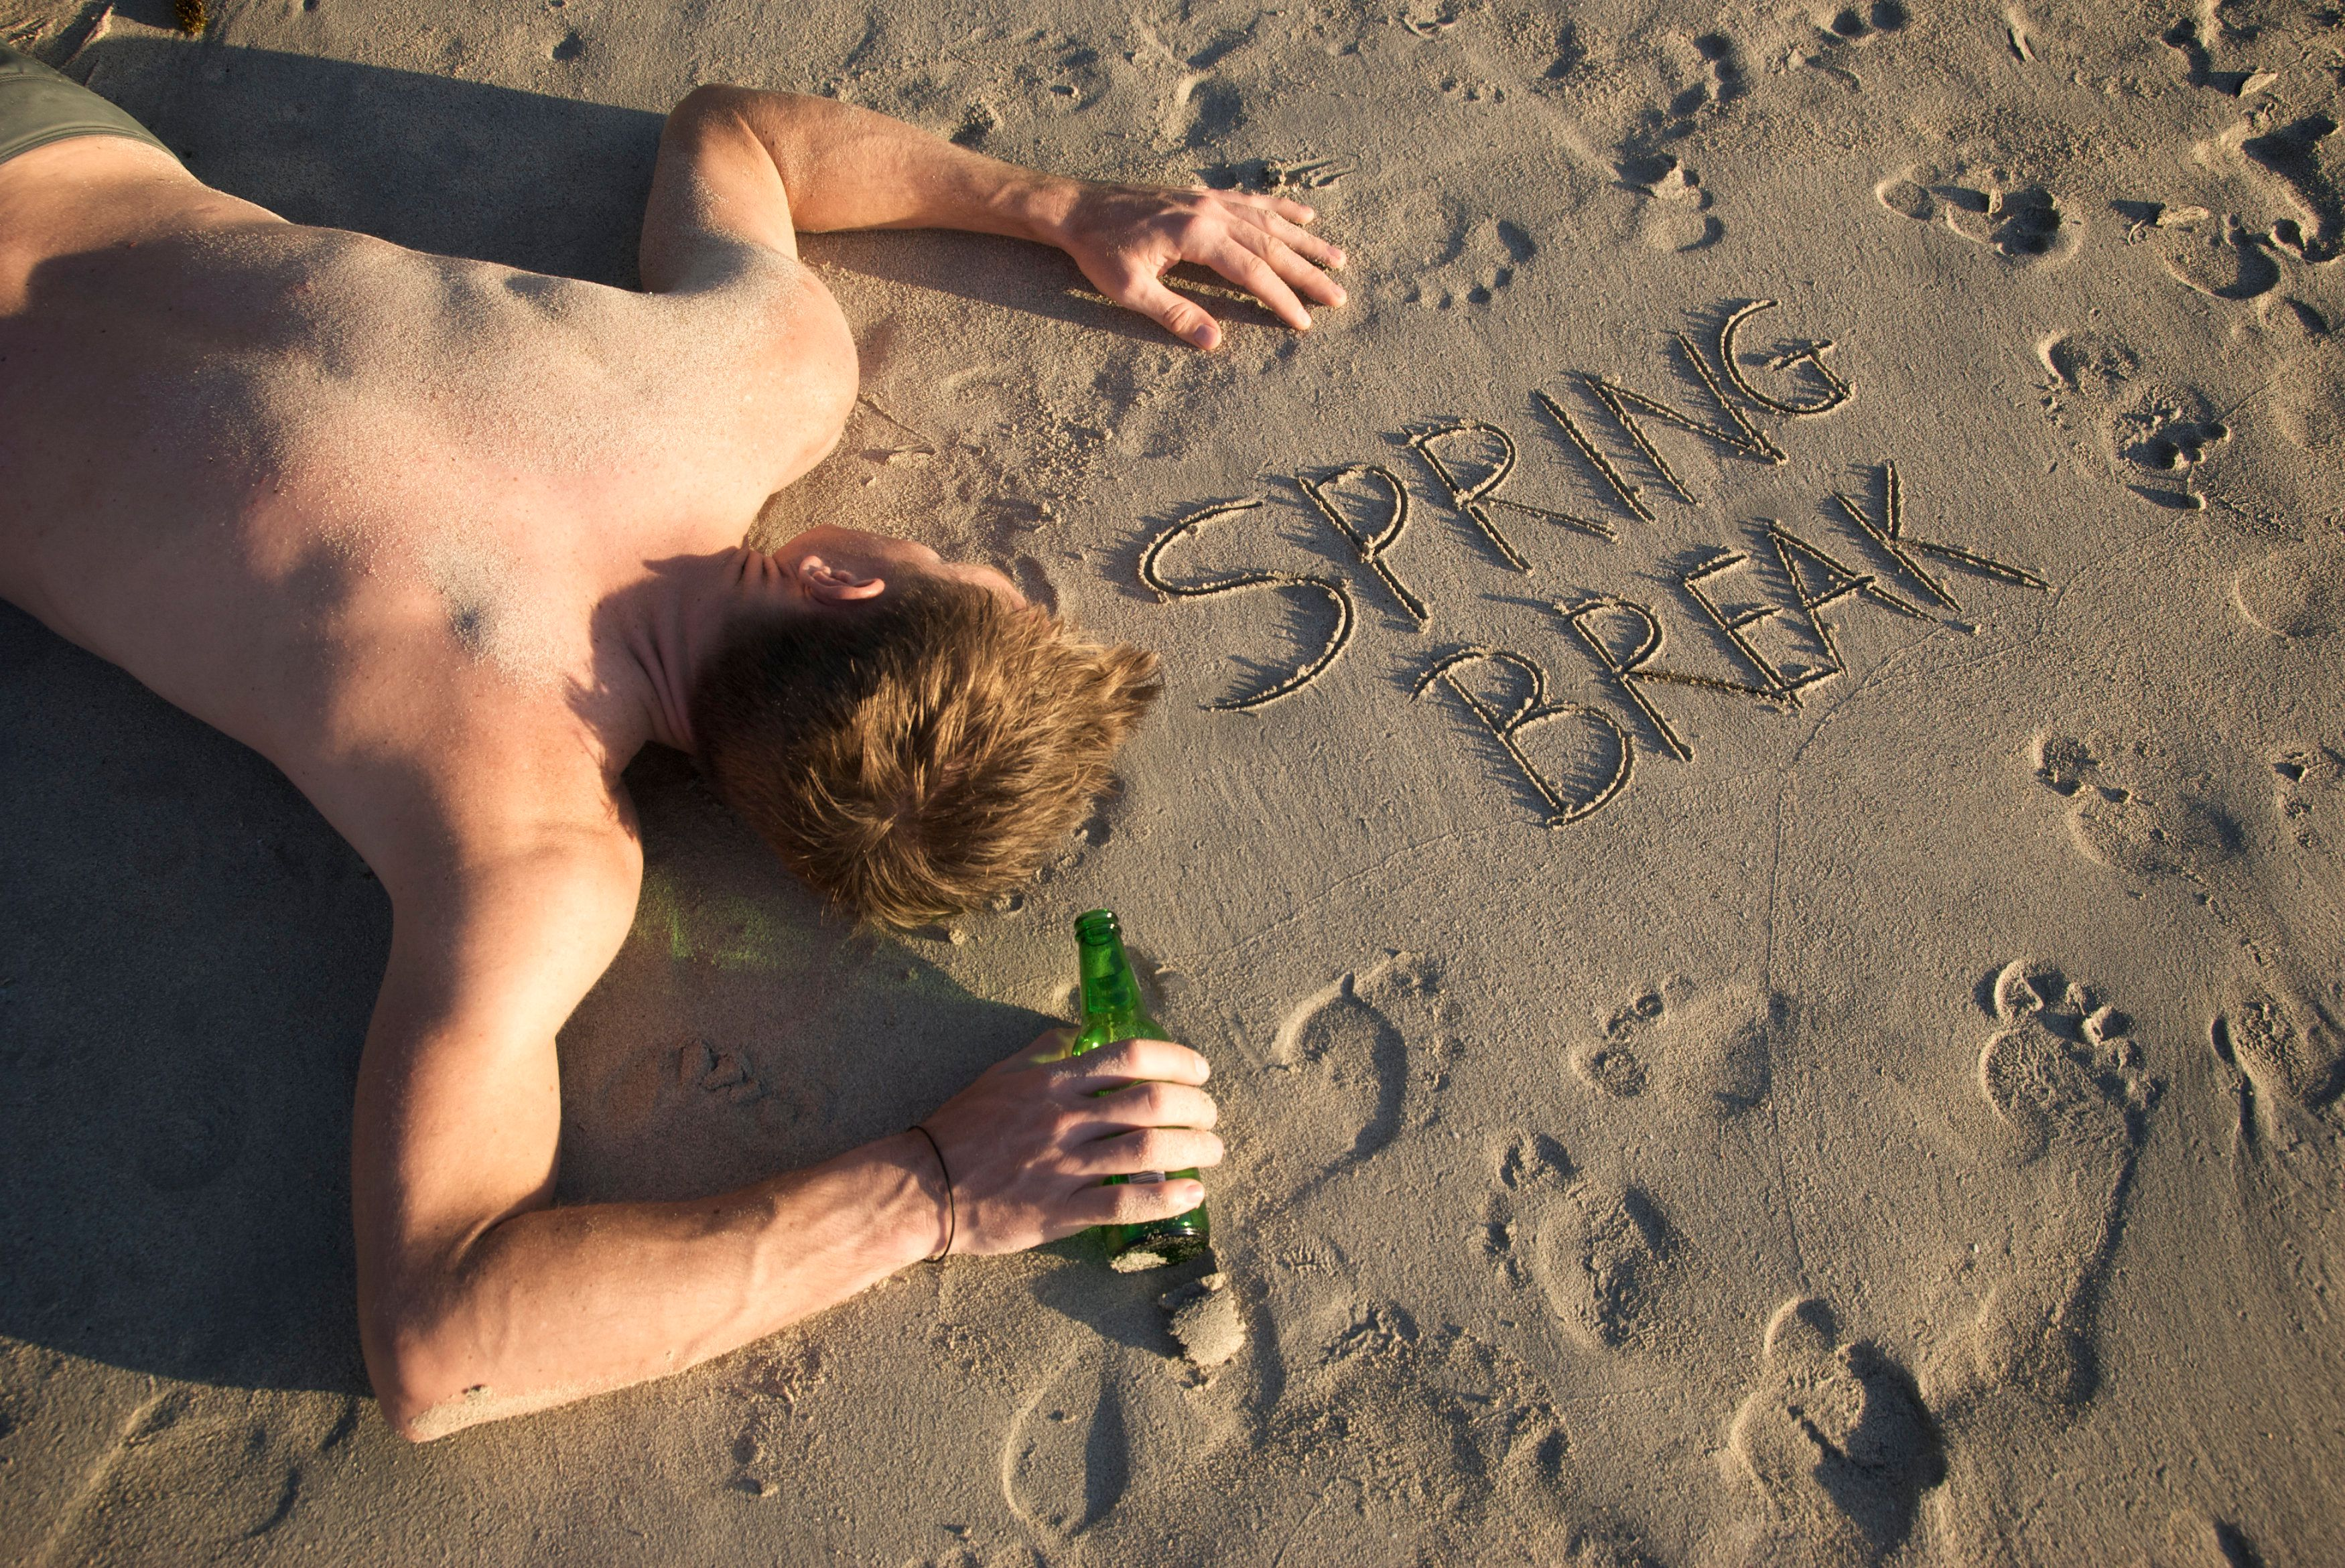 Shirtless guy passes out with beer bottle next to Spring Break message in footprint sand